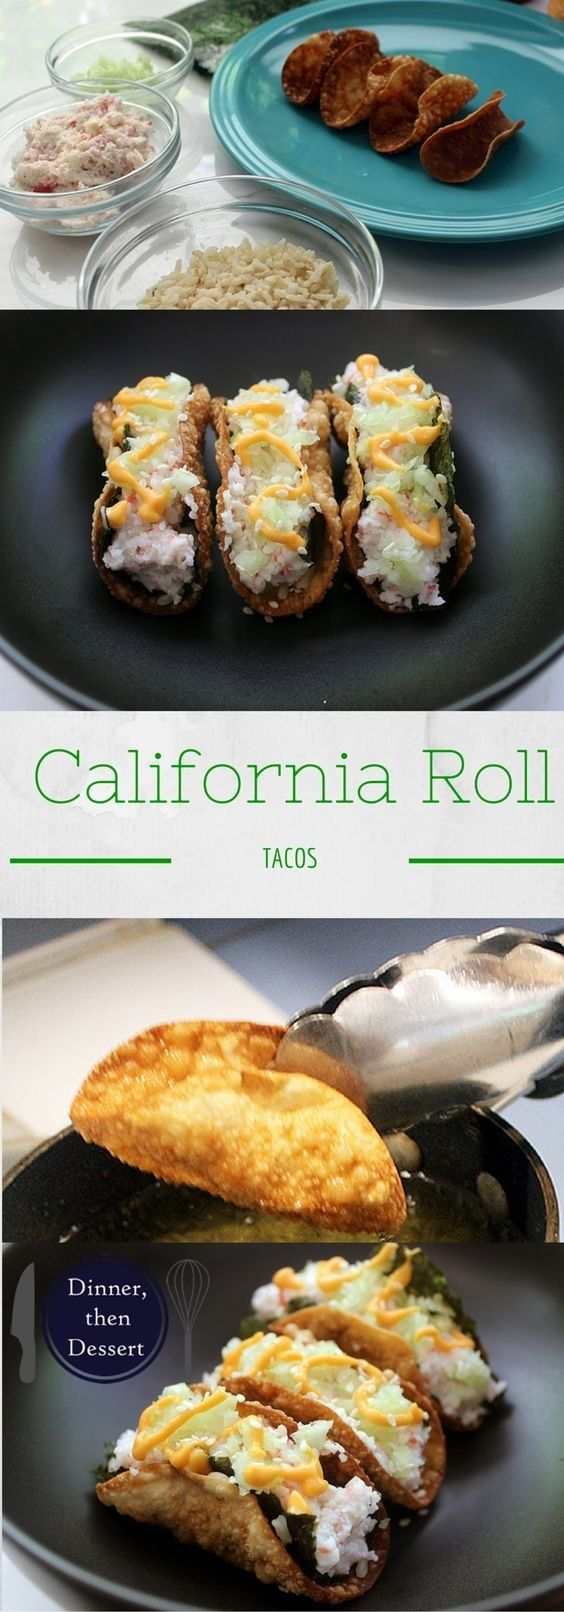 Crispy California Roll Tacos | 17 Sushi-Food Hybrids That Will Make You Question Everything